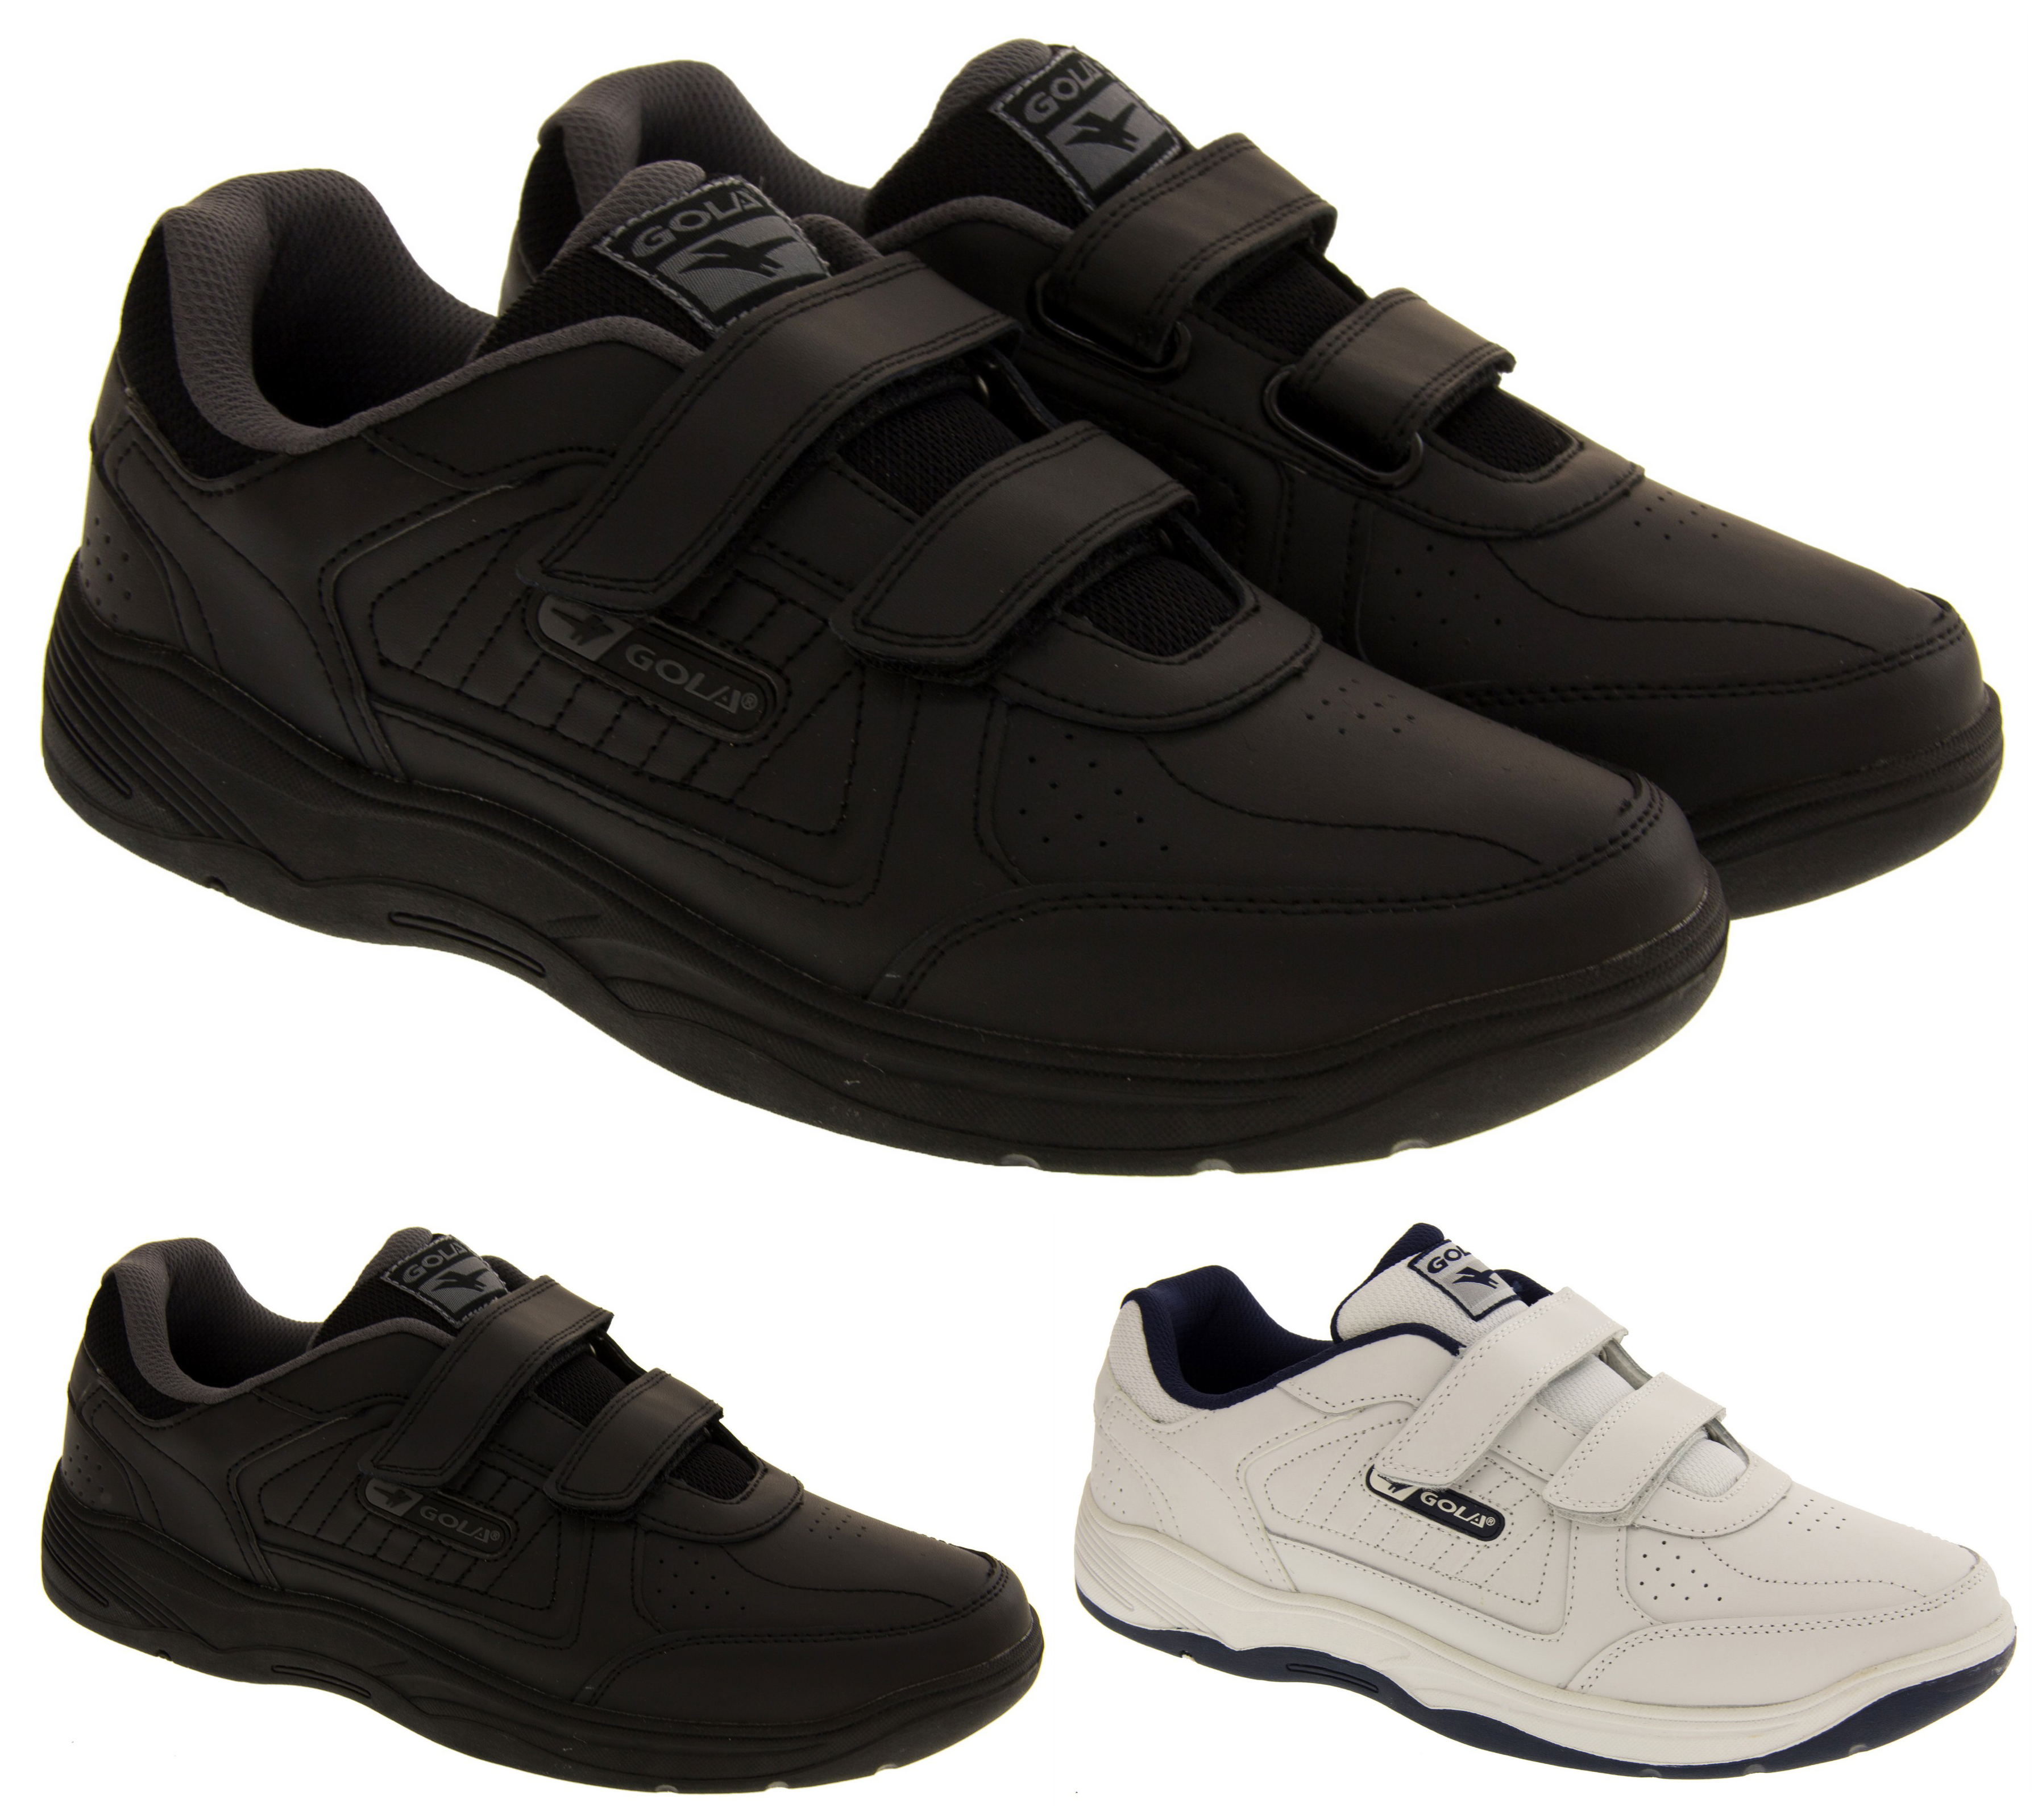 Trainer Style Golf Shoes Wide Fit Size   Uk